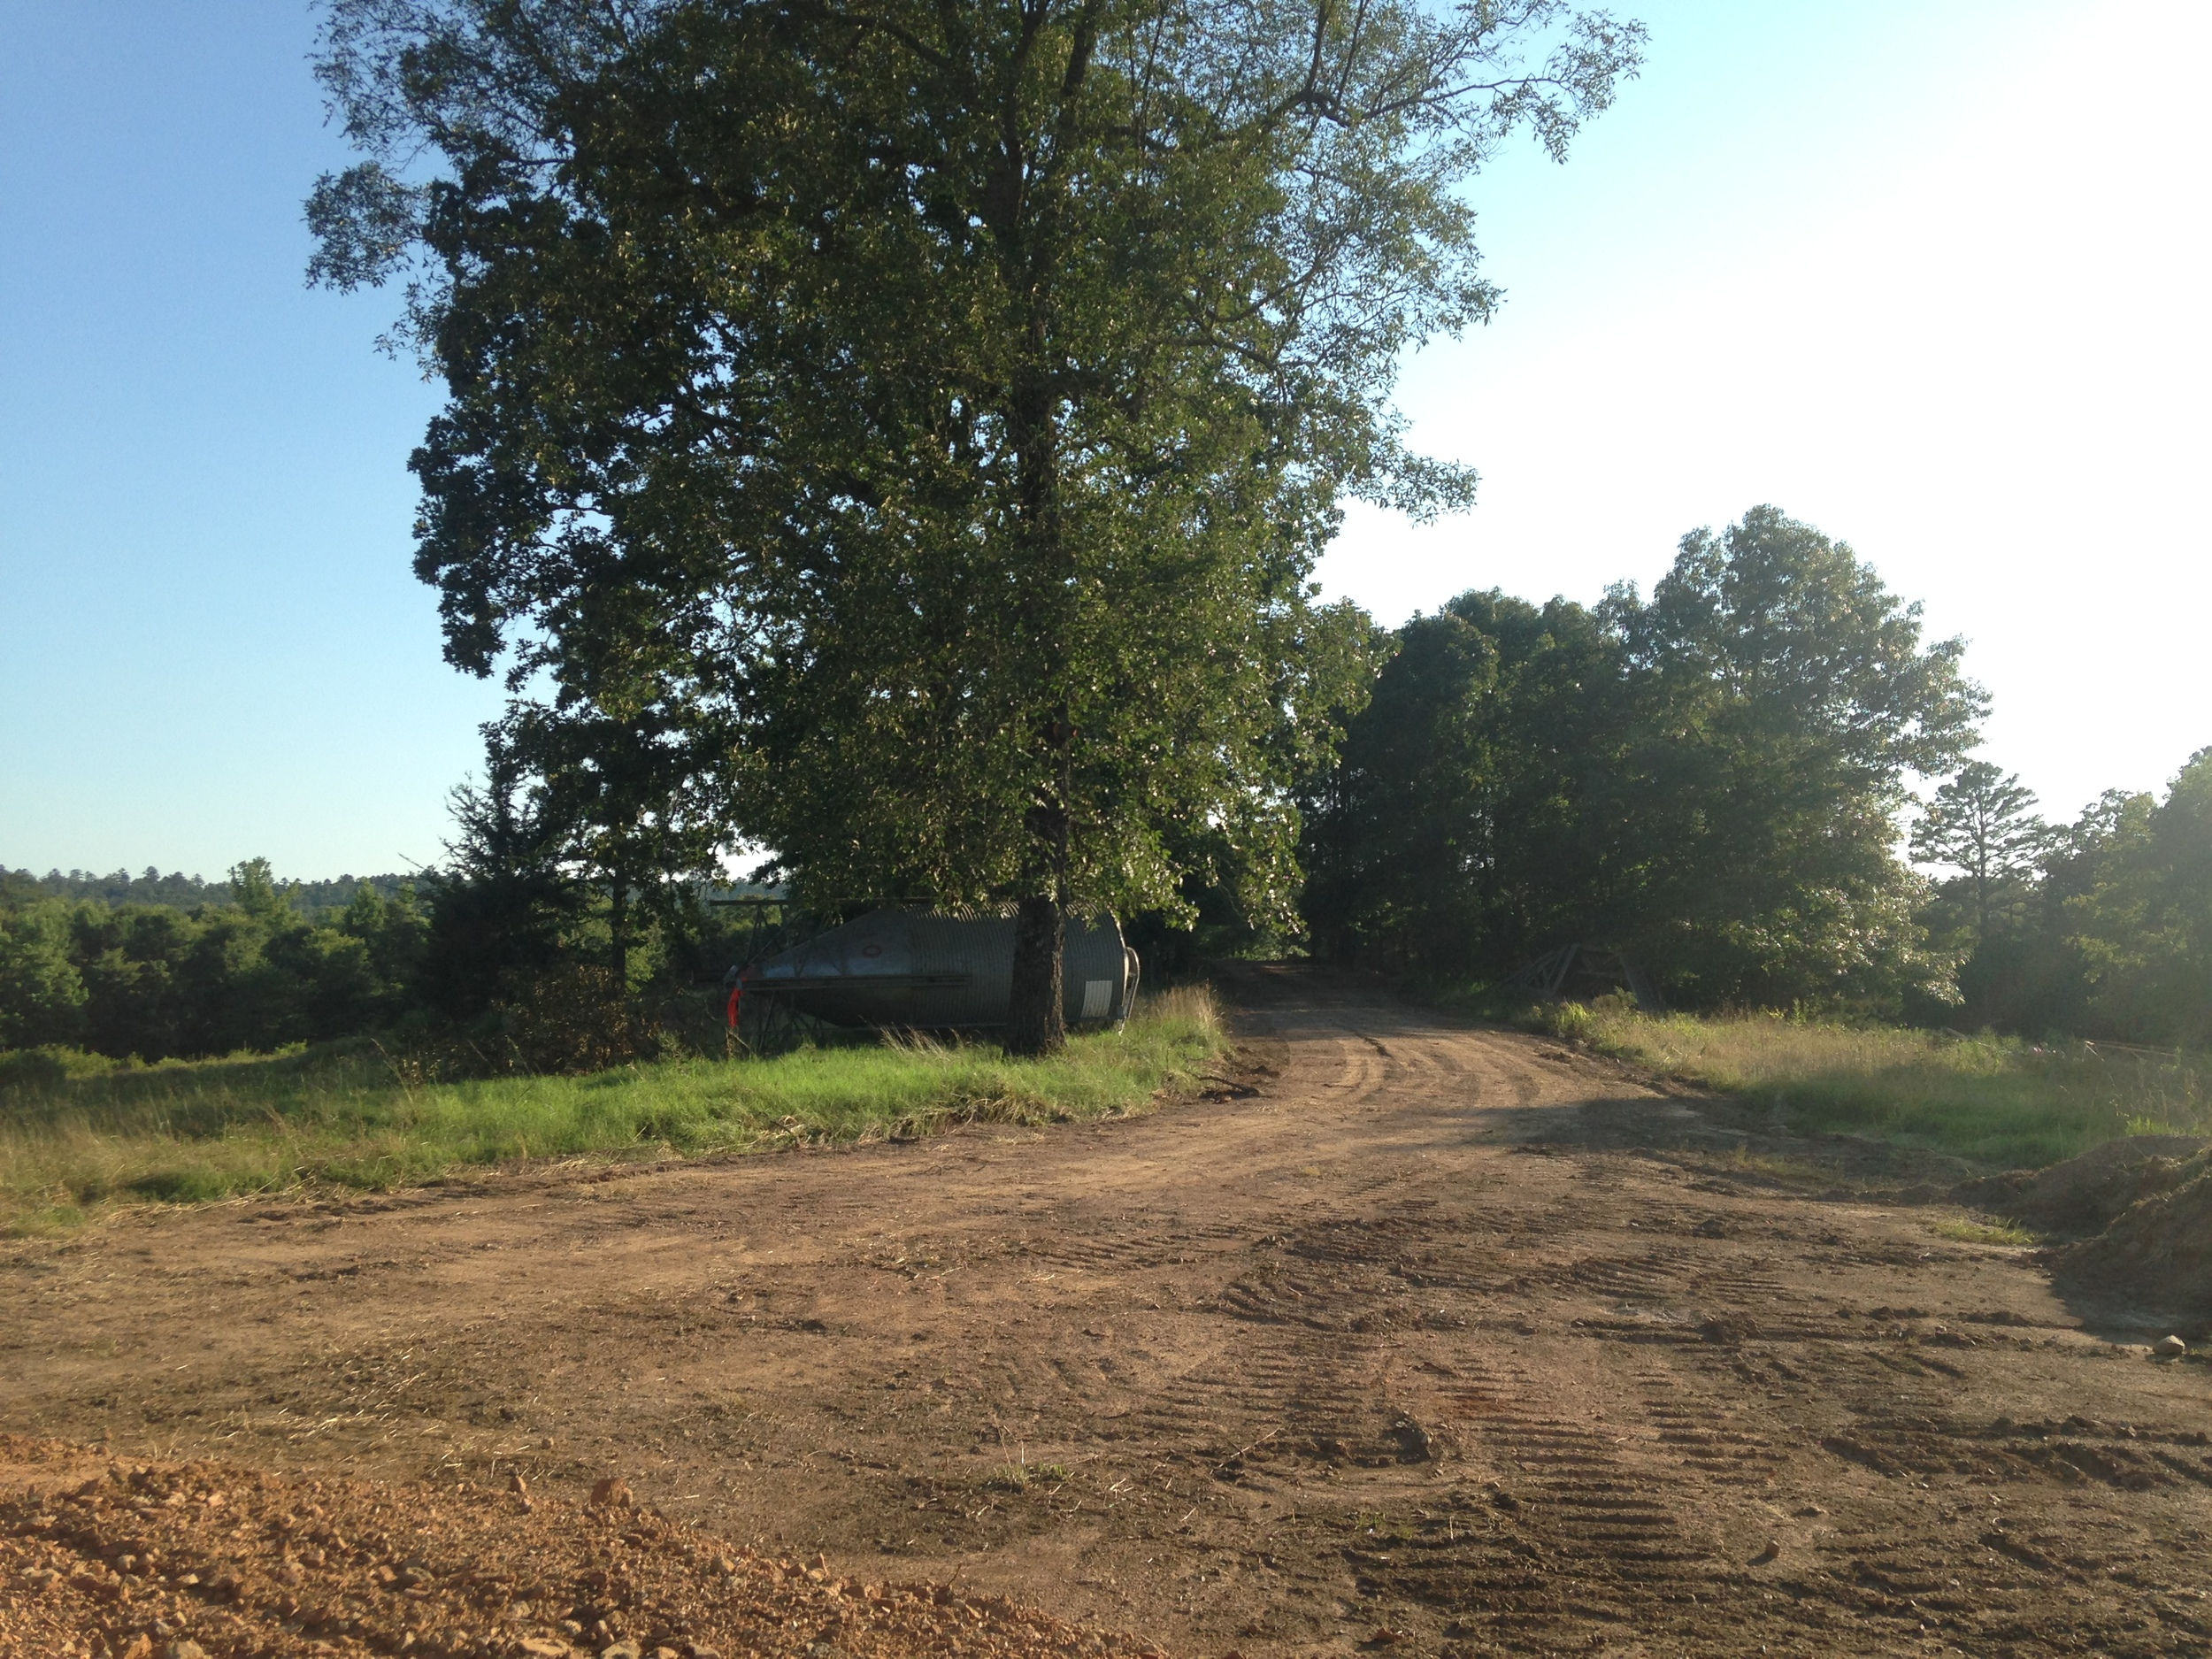 First you must drive off the highway and up a hill. At the top, you will see the new farmstore (eventually) and when you turn right, you'll see this, the road through the trees to our house.